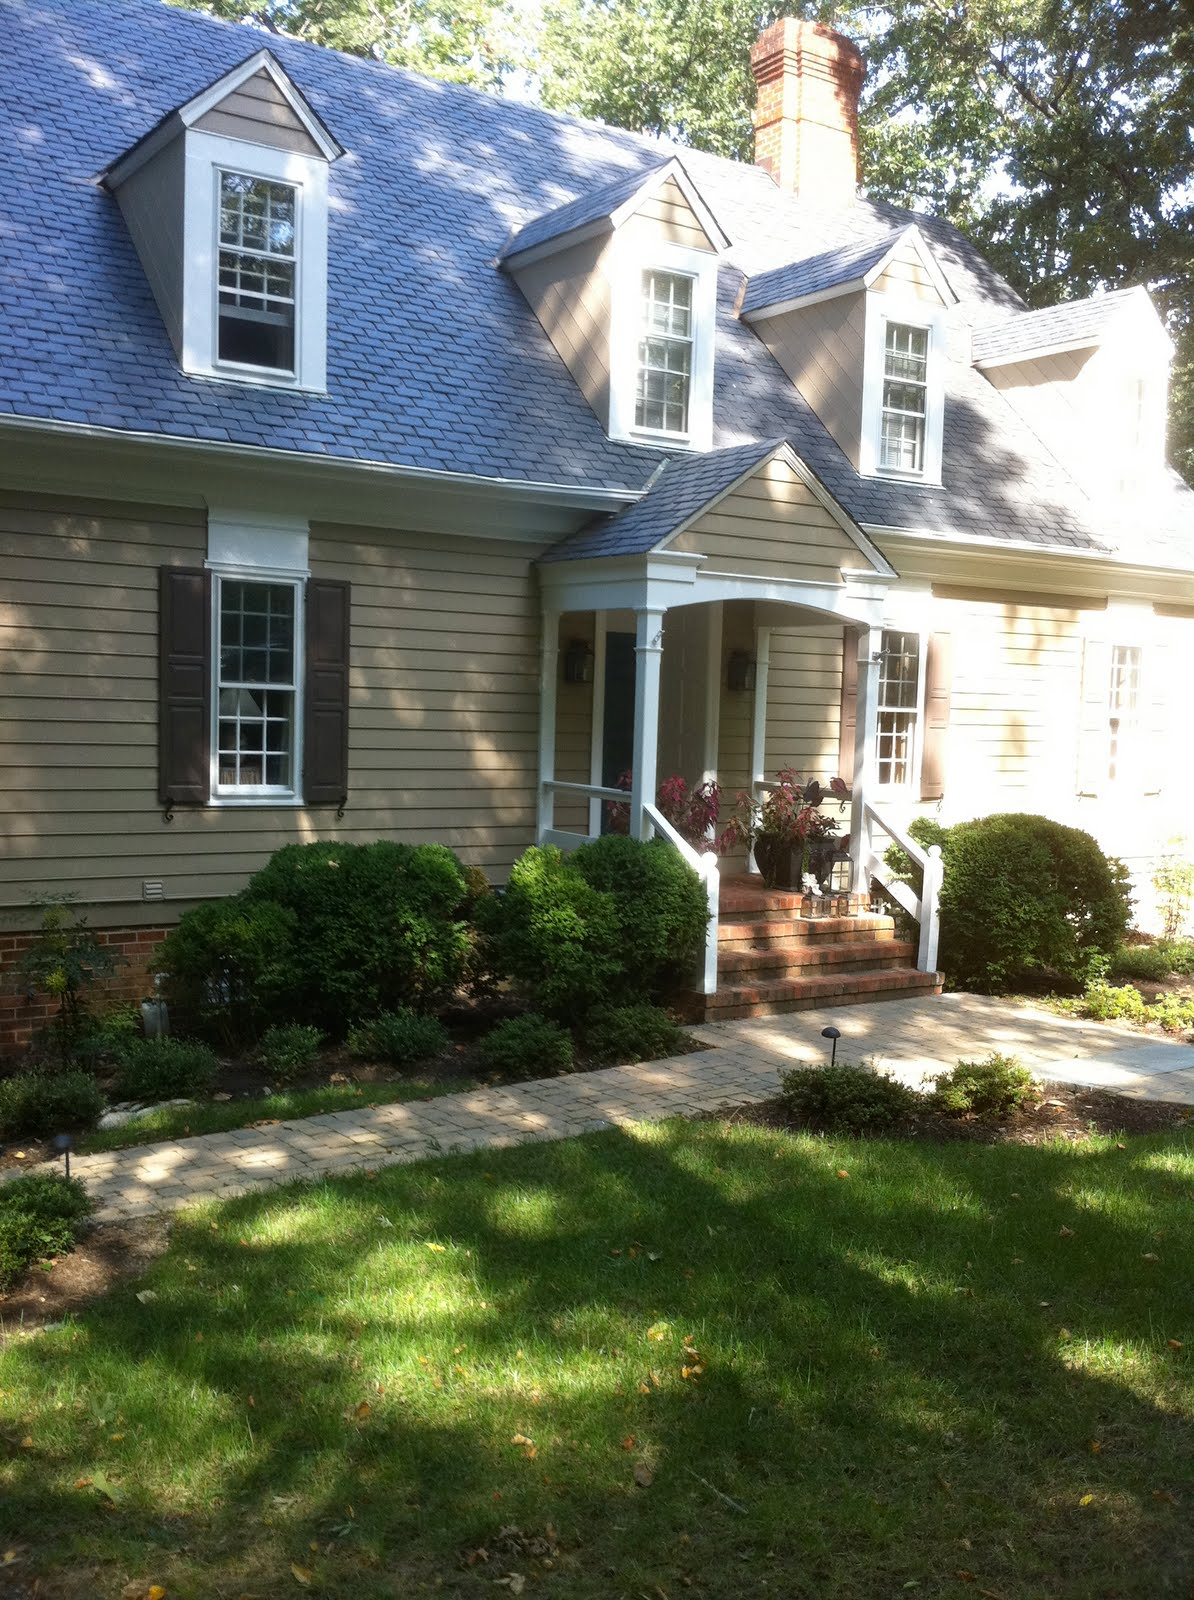 Bridget beari design chat exterior paint colors - House paint colors exterior photos ...